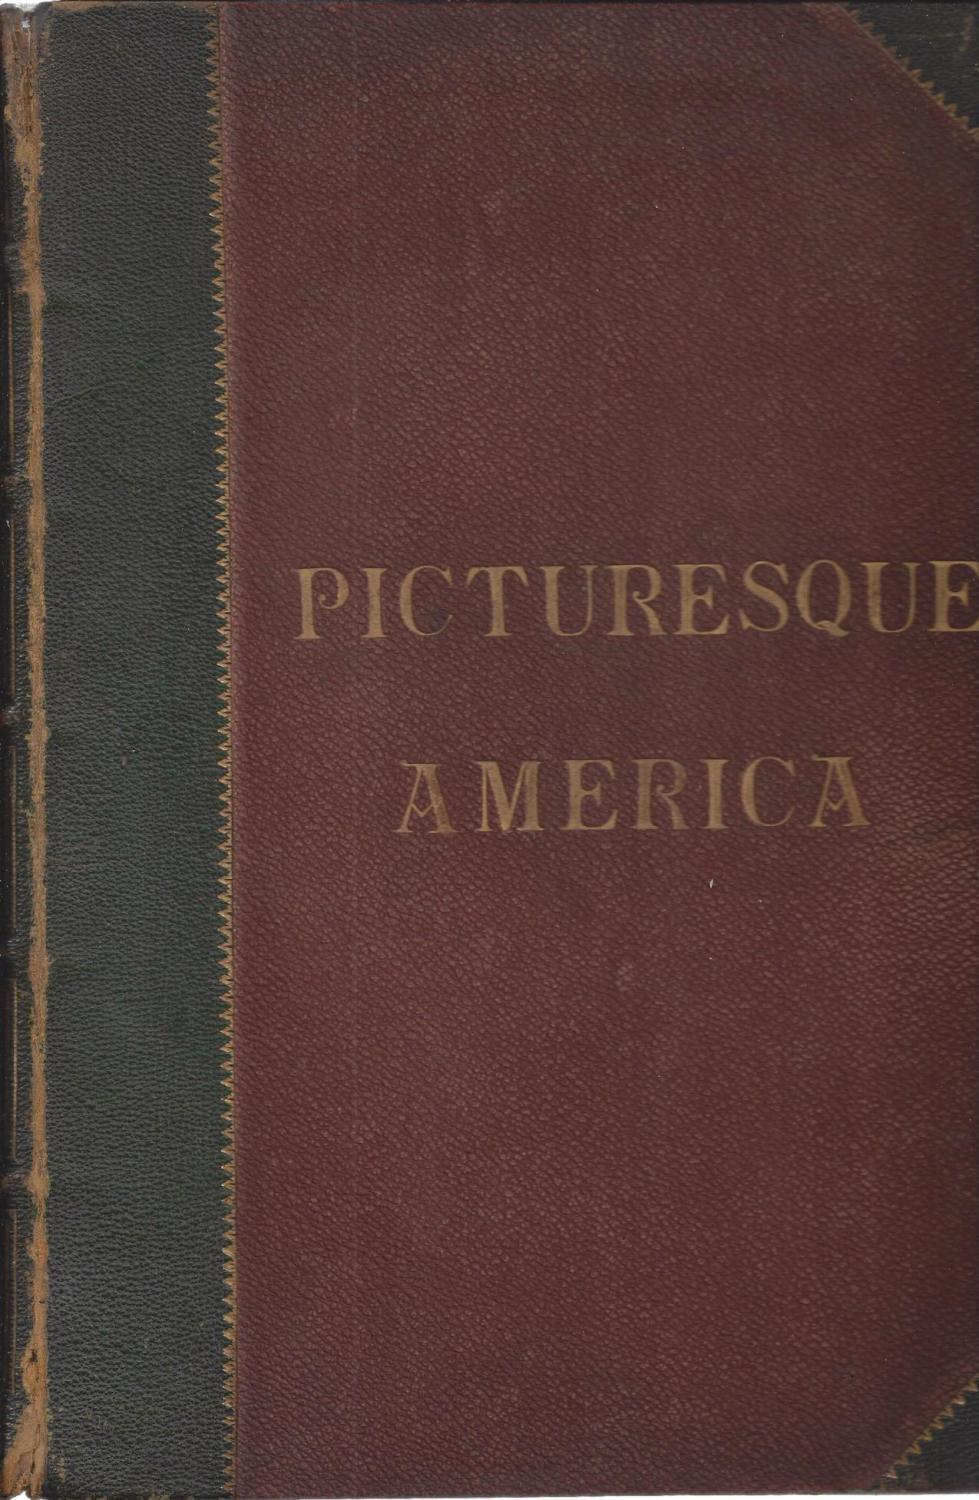 Picturesque America; or, The Land We Live In (VOLUME II ONLY), ed. William Cullen Bryant